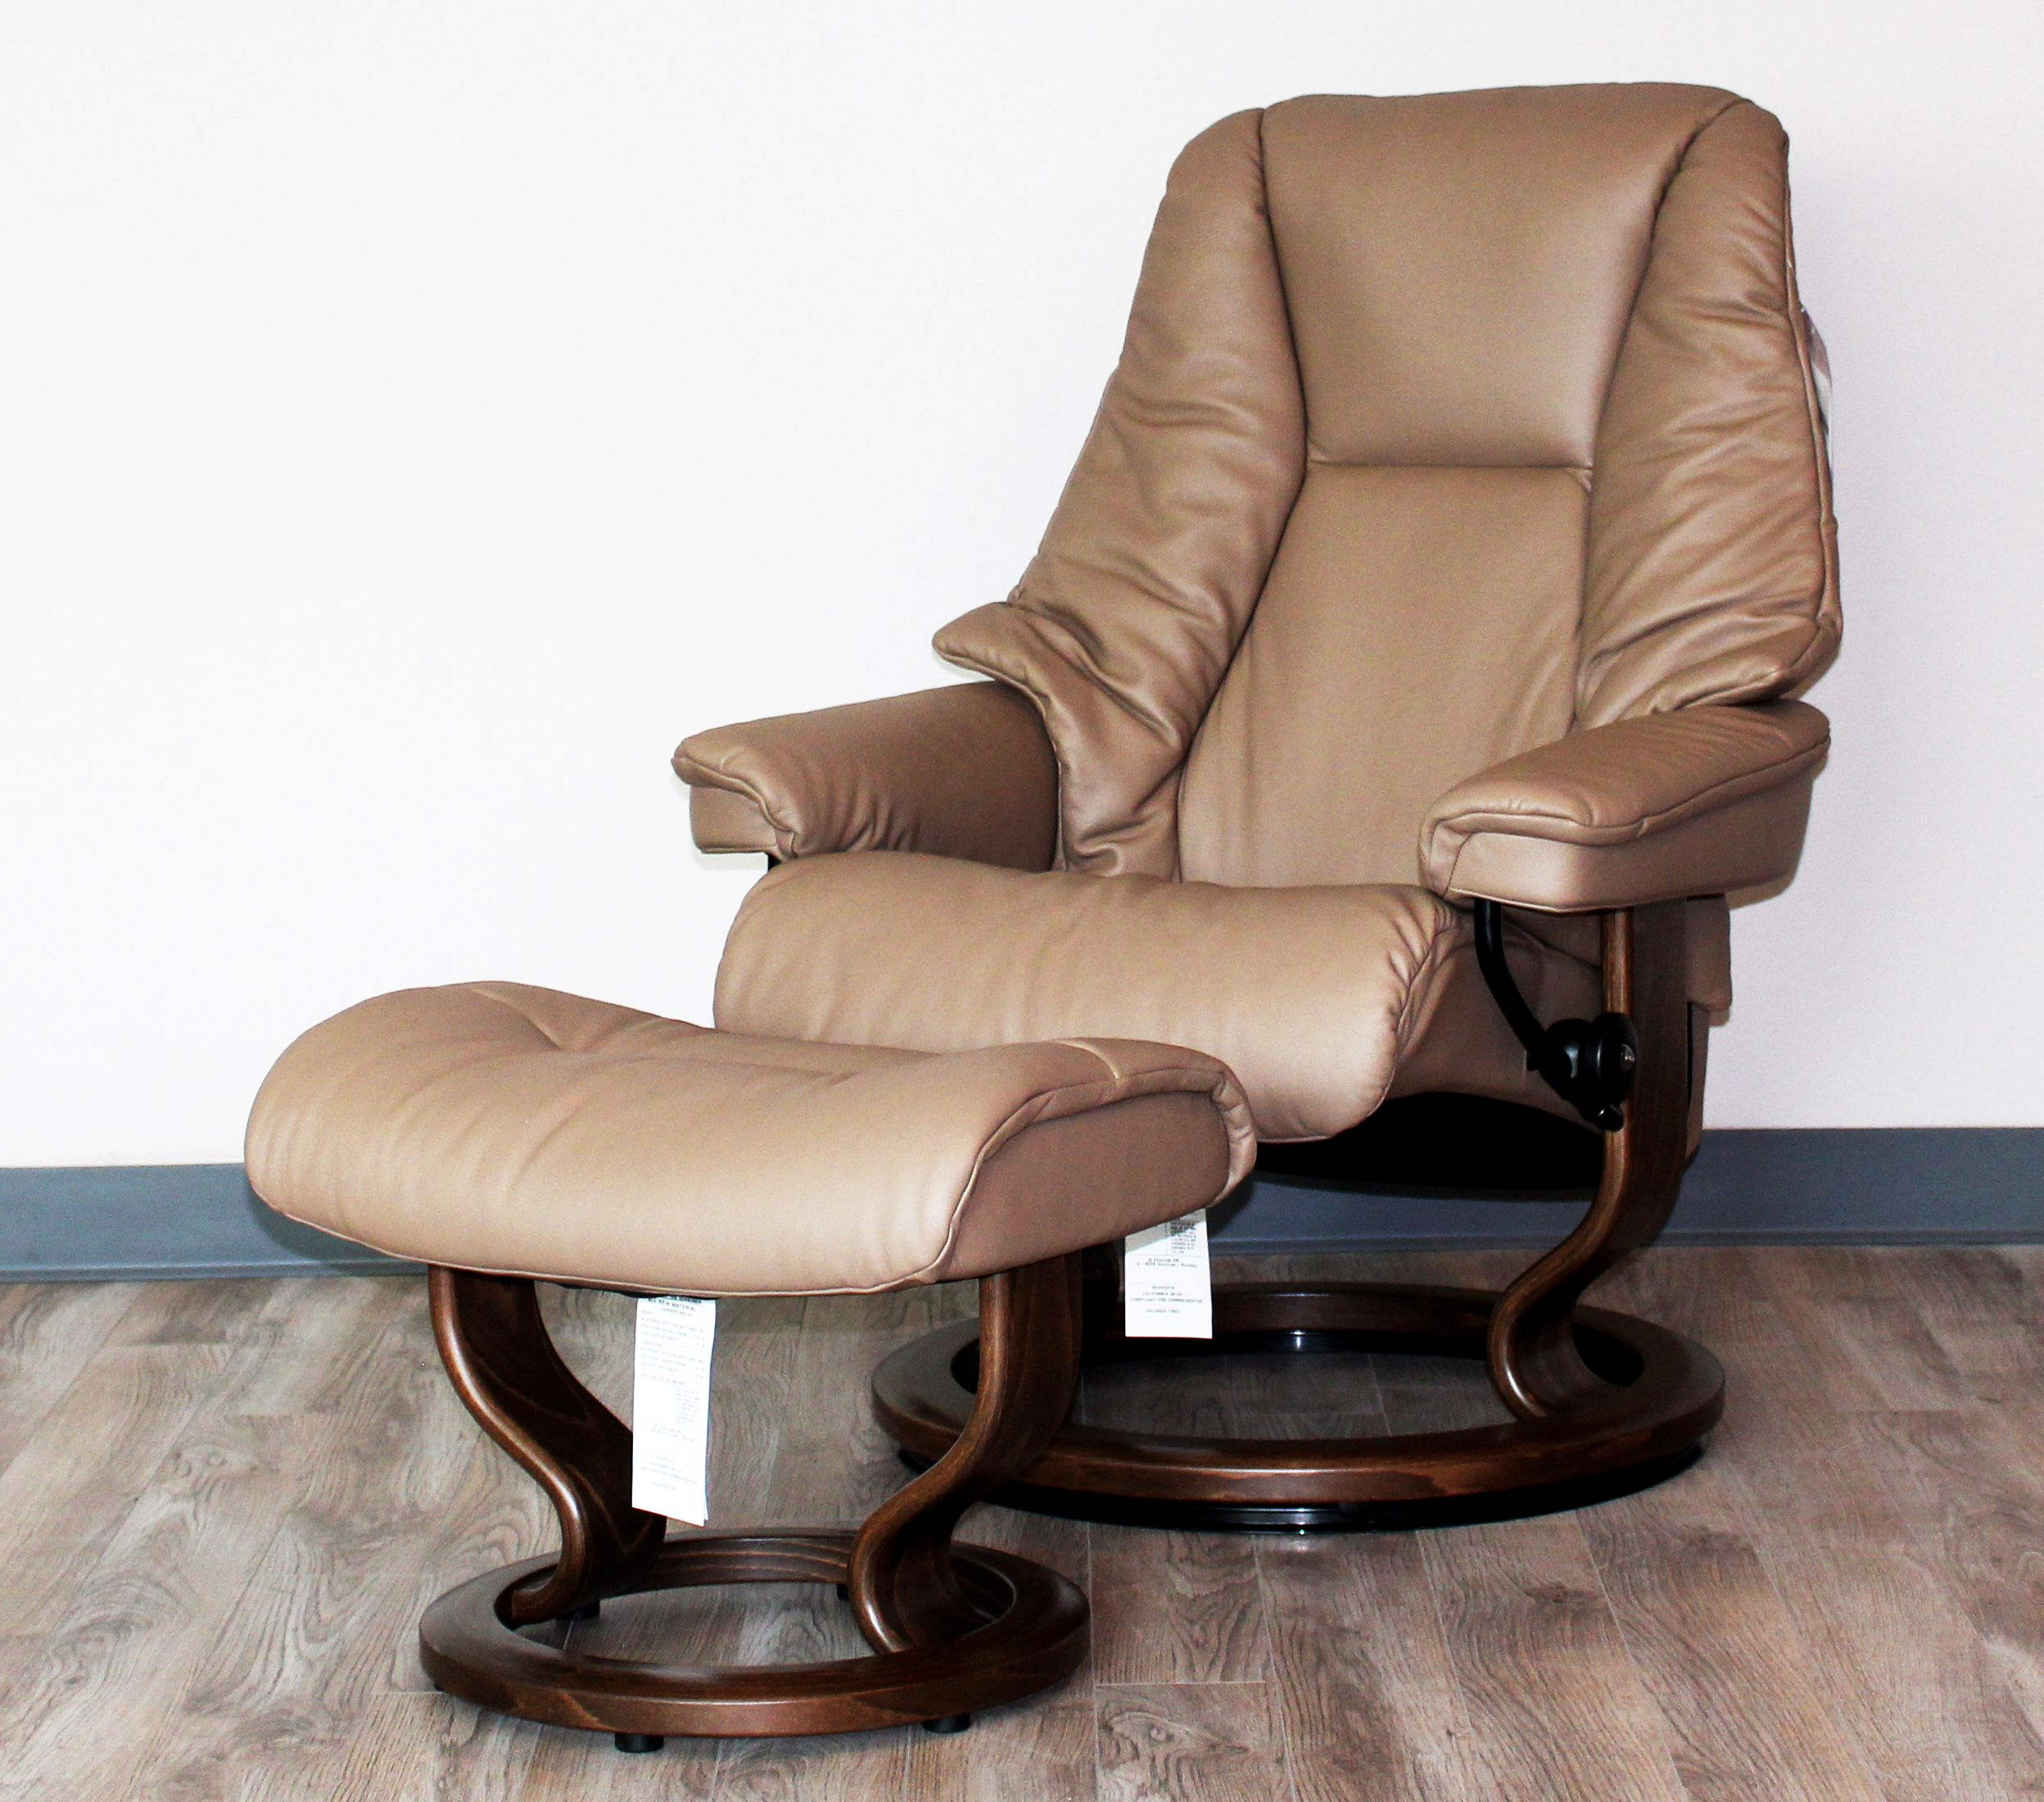 Ekornes Chairs Ekornes Stressless Live Recliner Chair Lounger And Ottoman